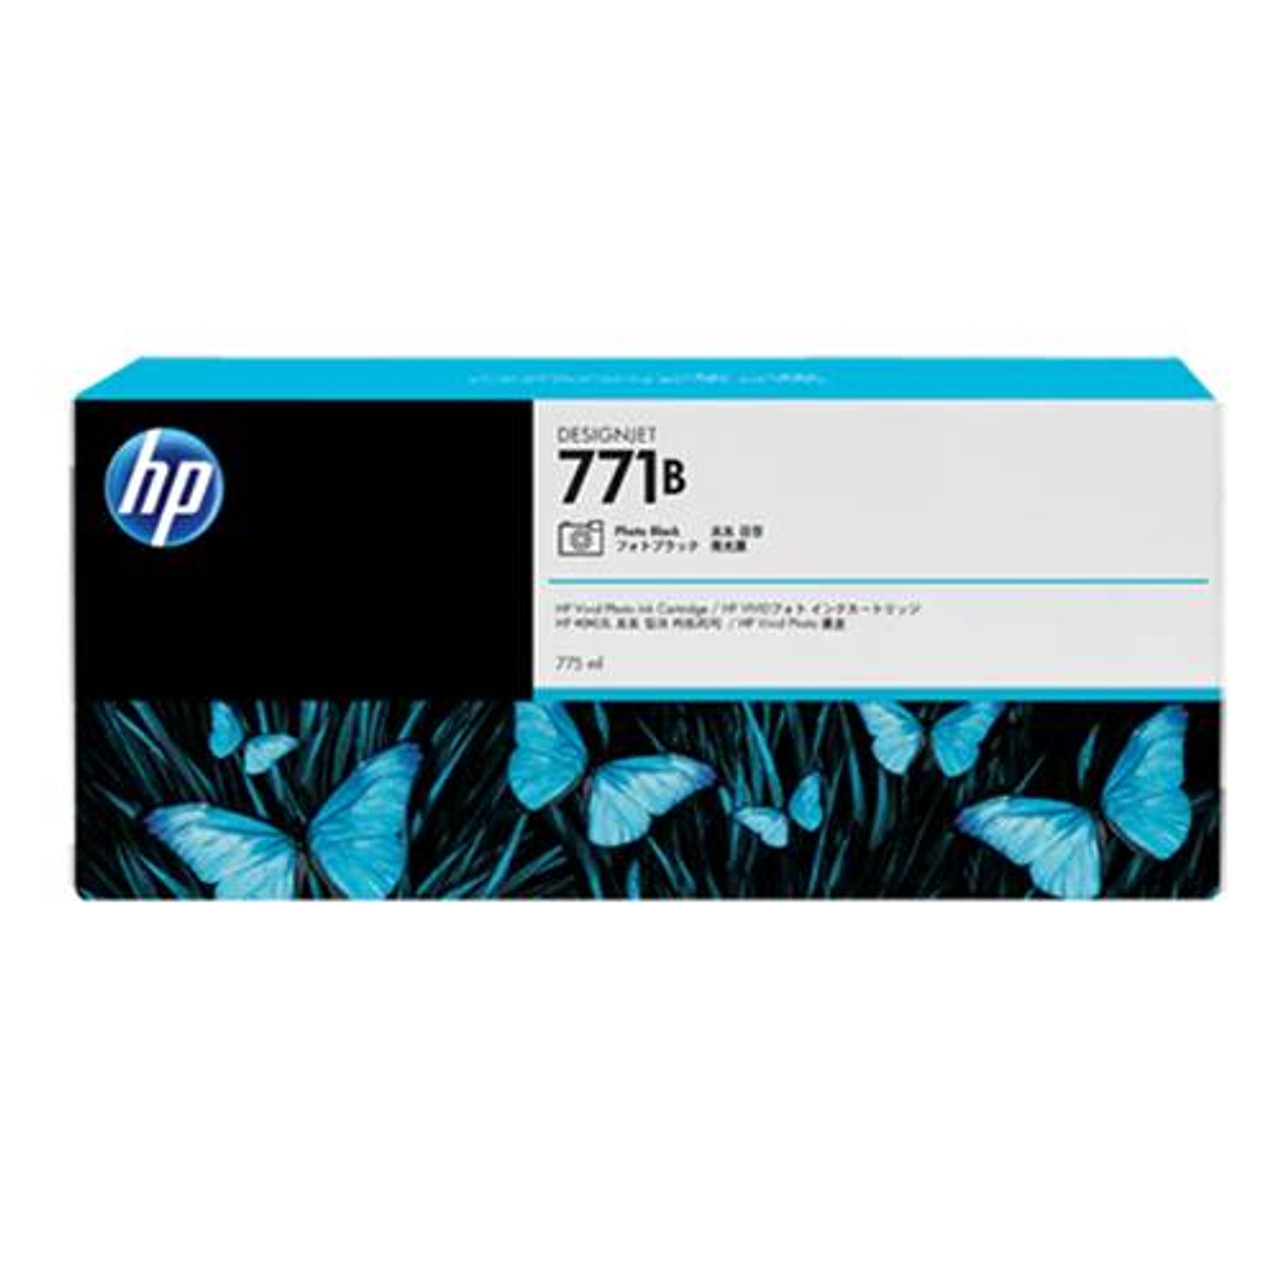 Image for HP771B 775ML Ink Cartridge - Photo Black (B6Y05A) CX Computer Superstore